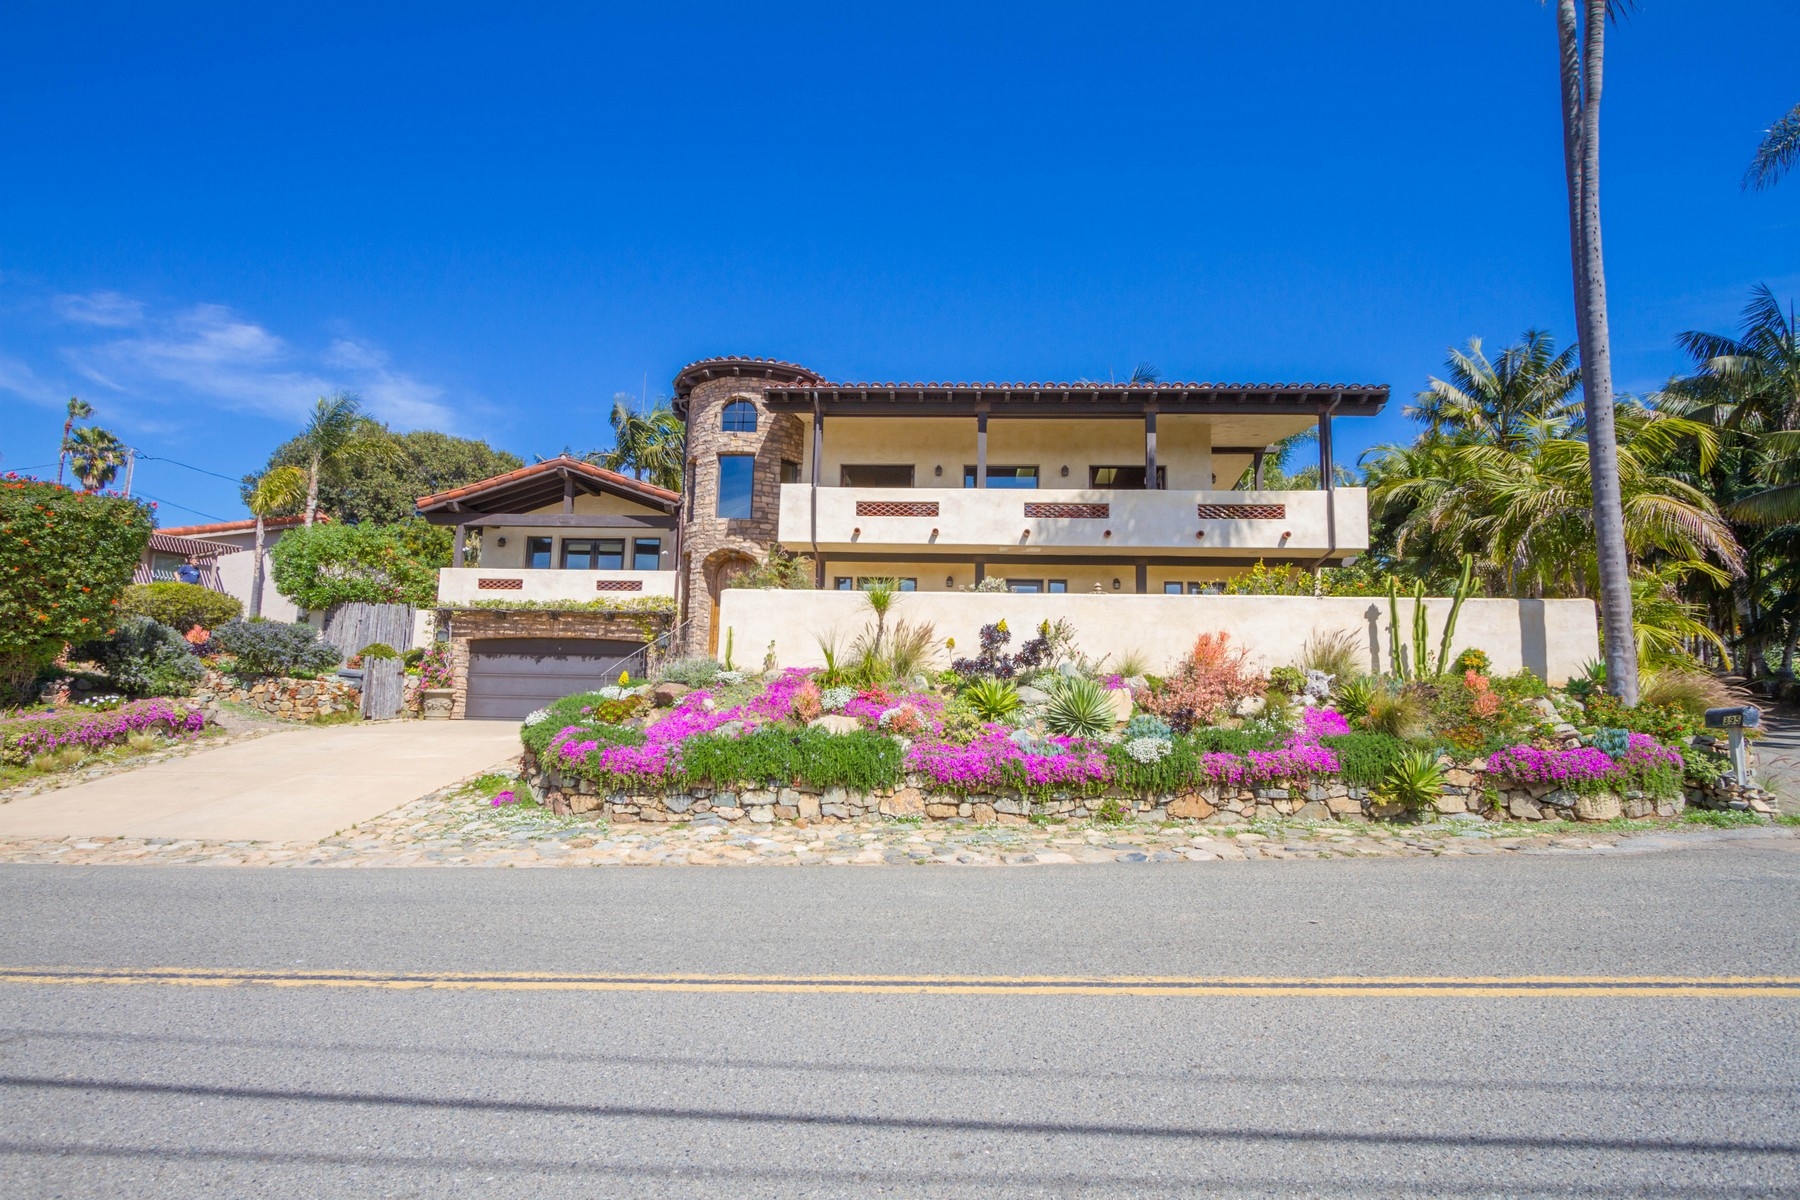 Single Family Home for Active at 399 Sunset Drive 399 Sunset Drive Encinitas, California 92024 United States